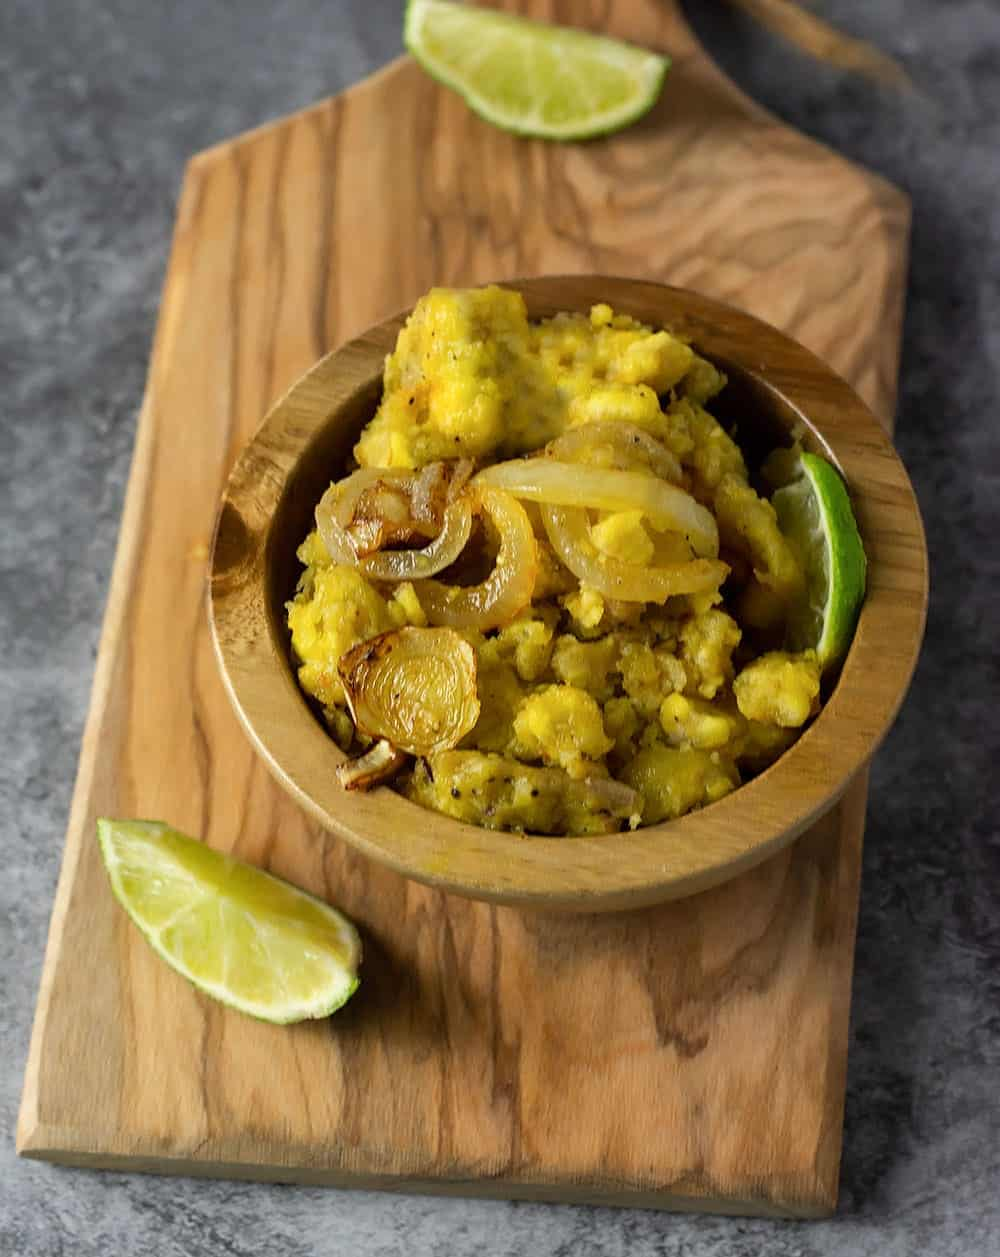 Mangu recipe dominican mashed plantains in a wooden bowl on a wooden cutting board with lime slices on a marbled background overlay